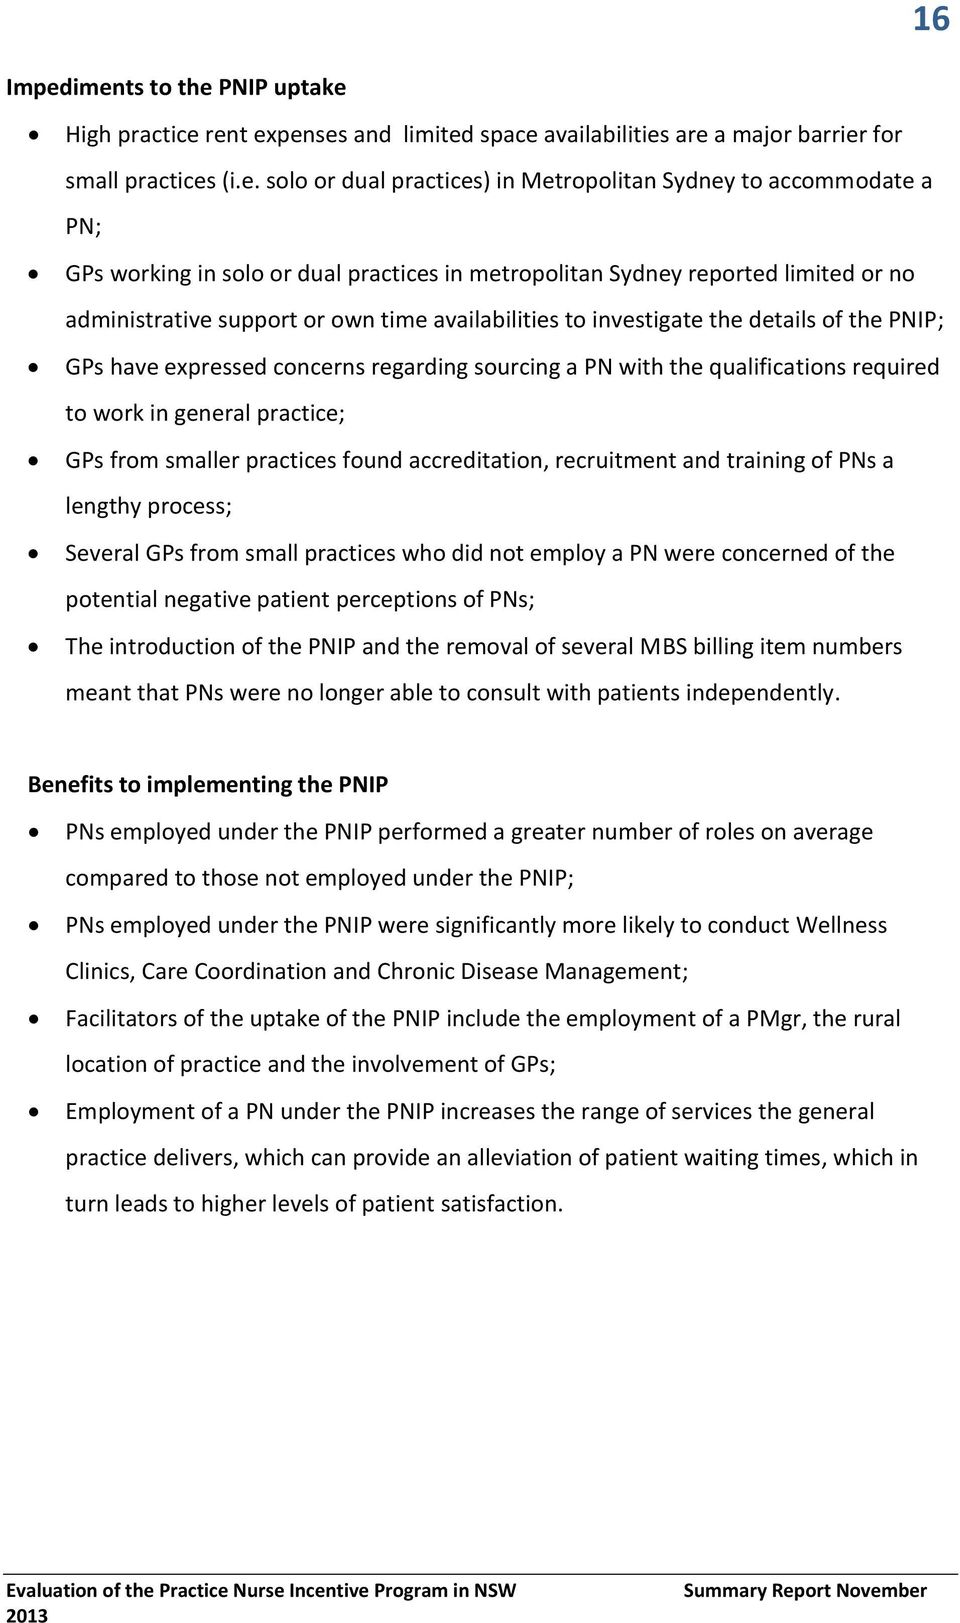 PN; GPs working in solo or dual practices in metropolitan Sydney reported limited or no administrative support or own time availabilities to investigate the details of the PNIP; GPs have expressed